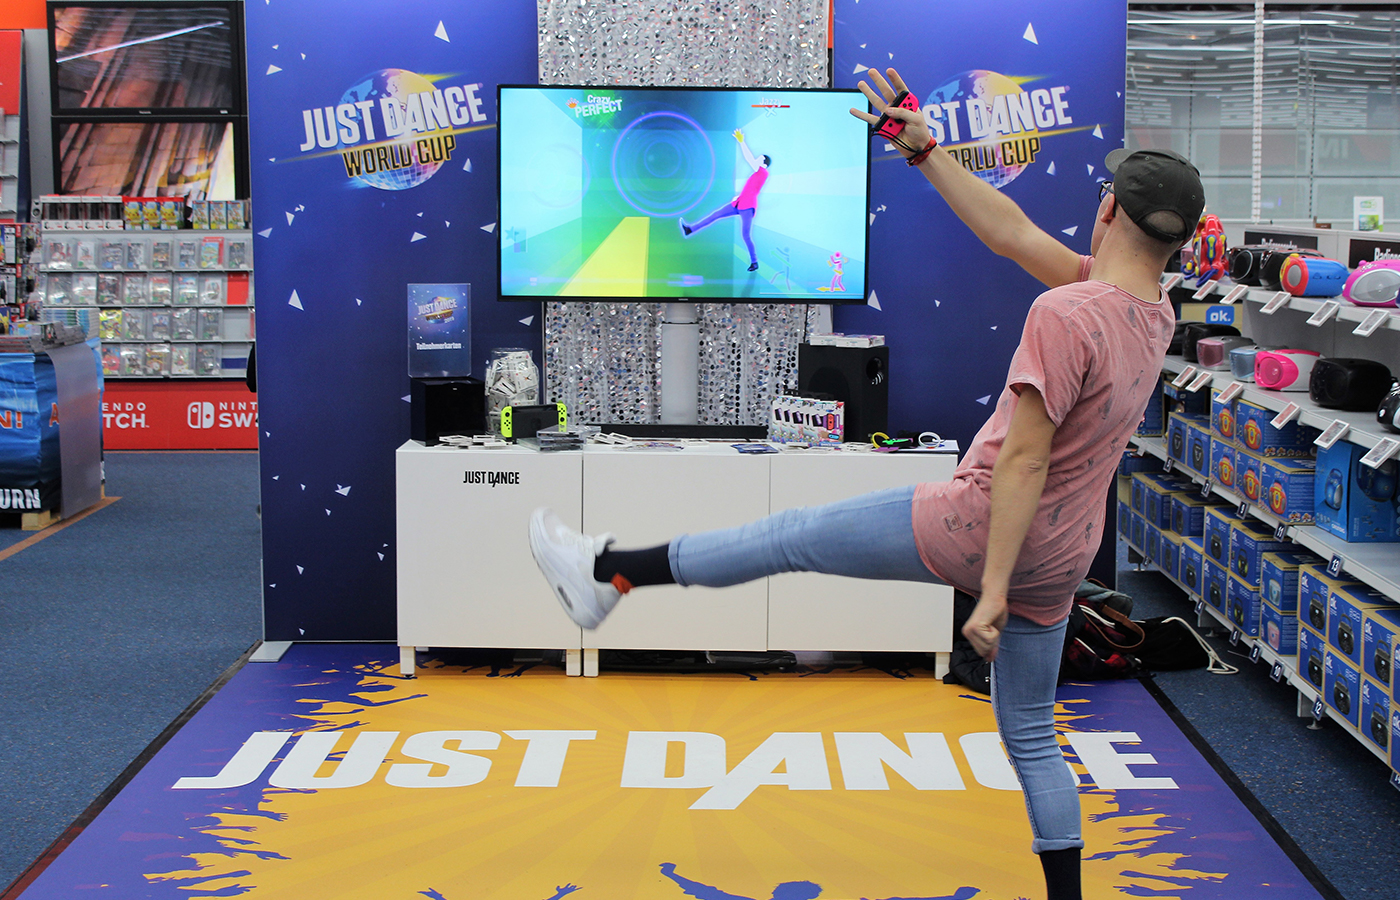 Ubisoft – Just Dance World Cup POS Tour 2018